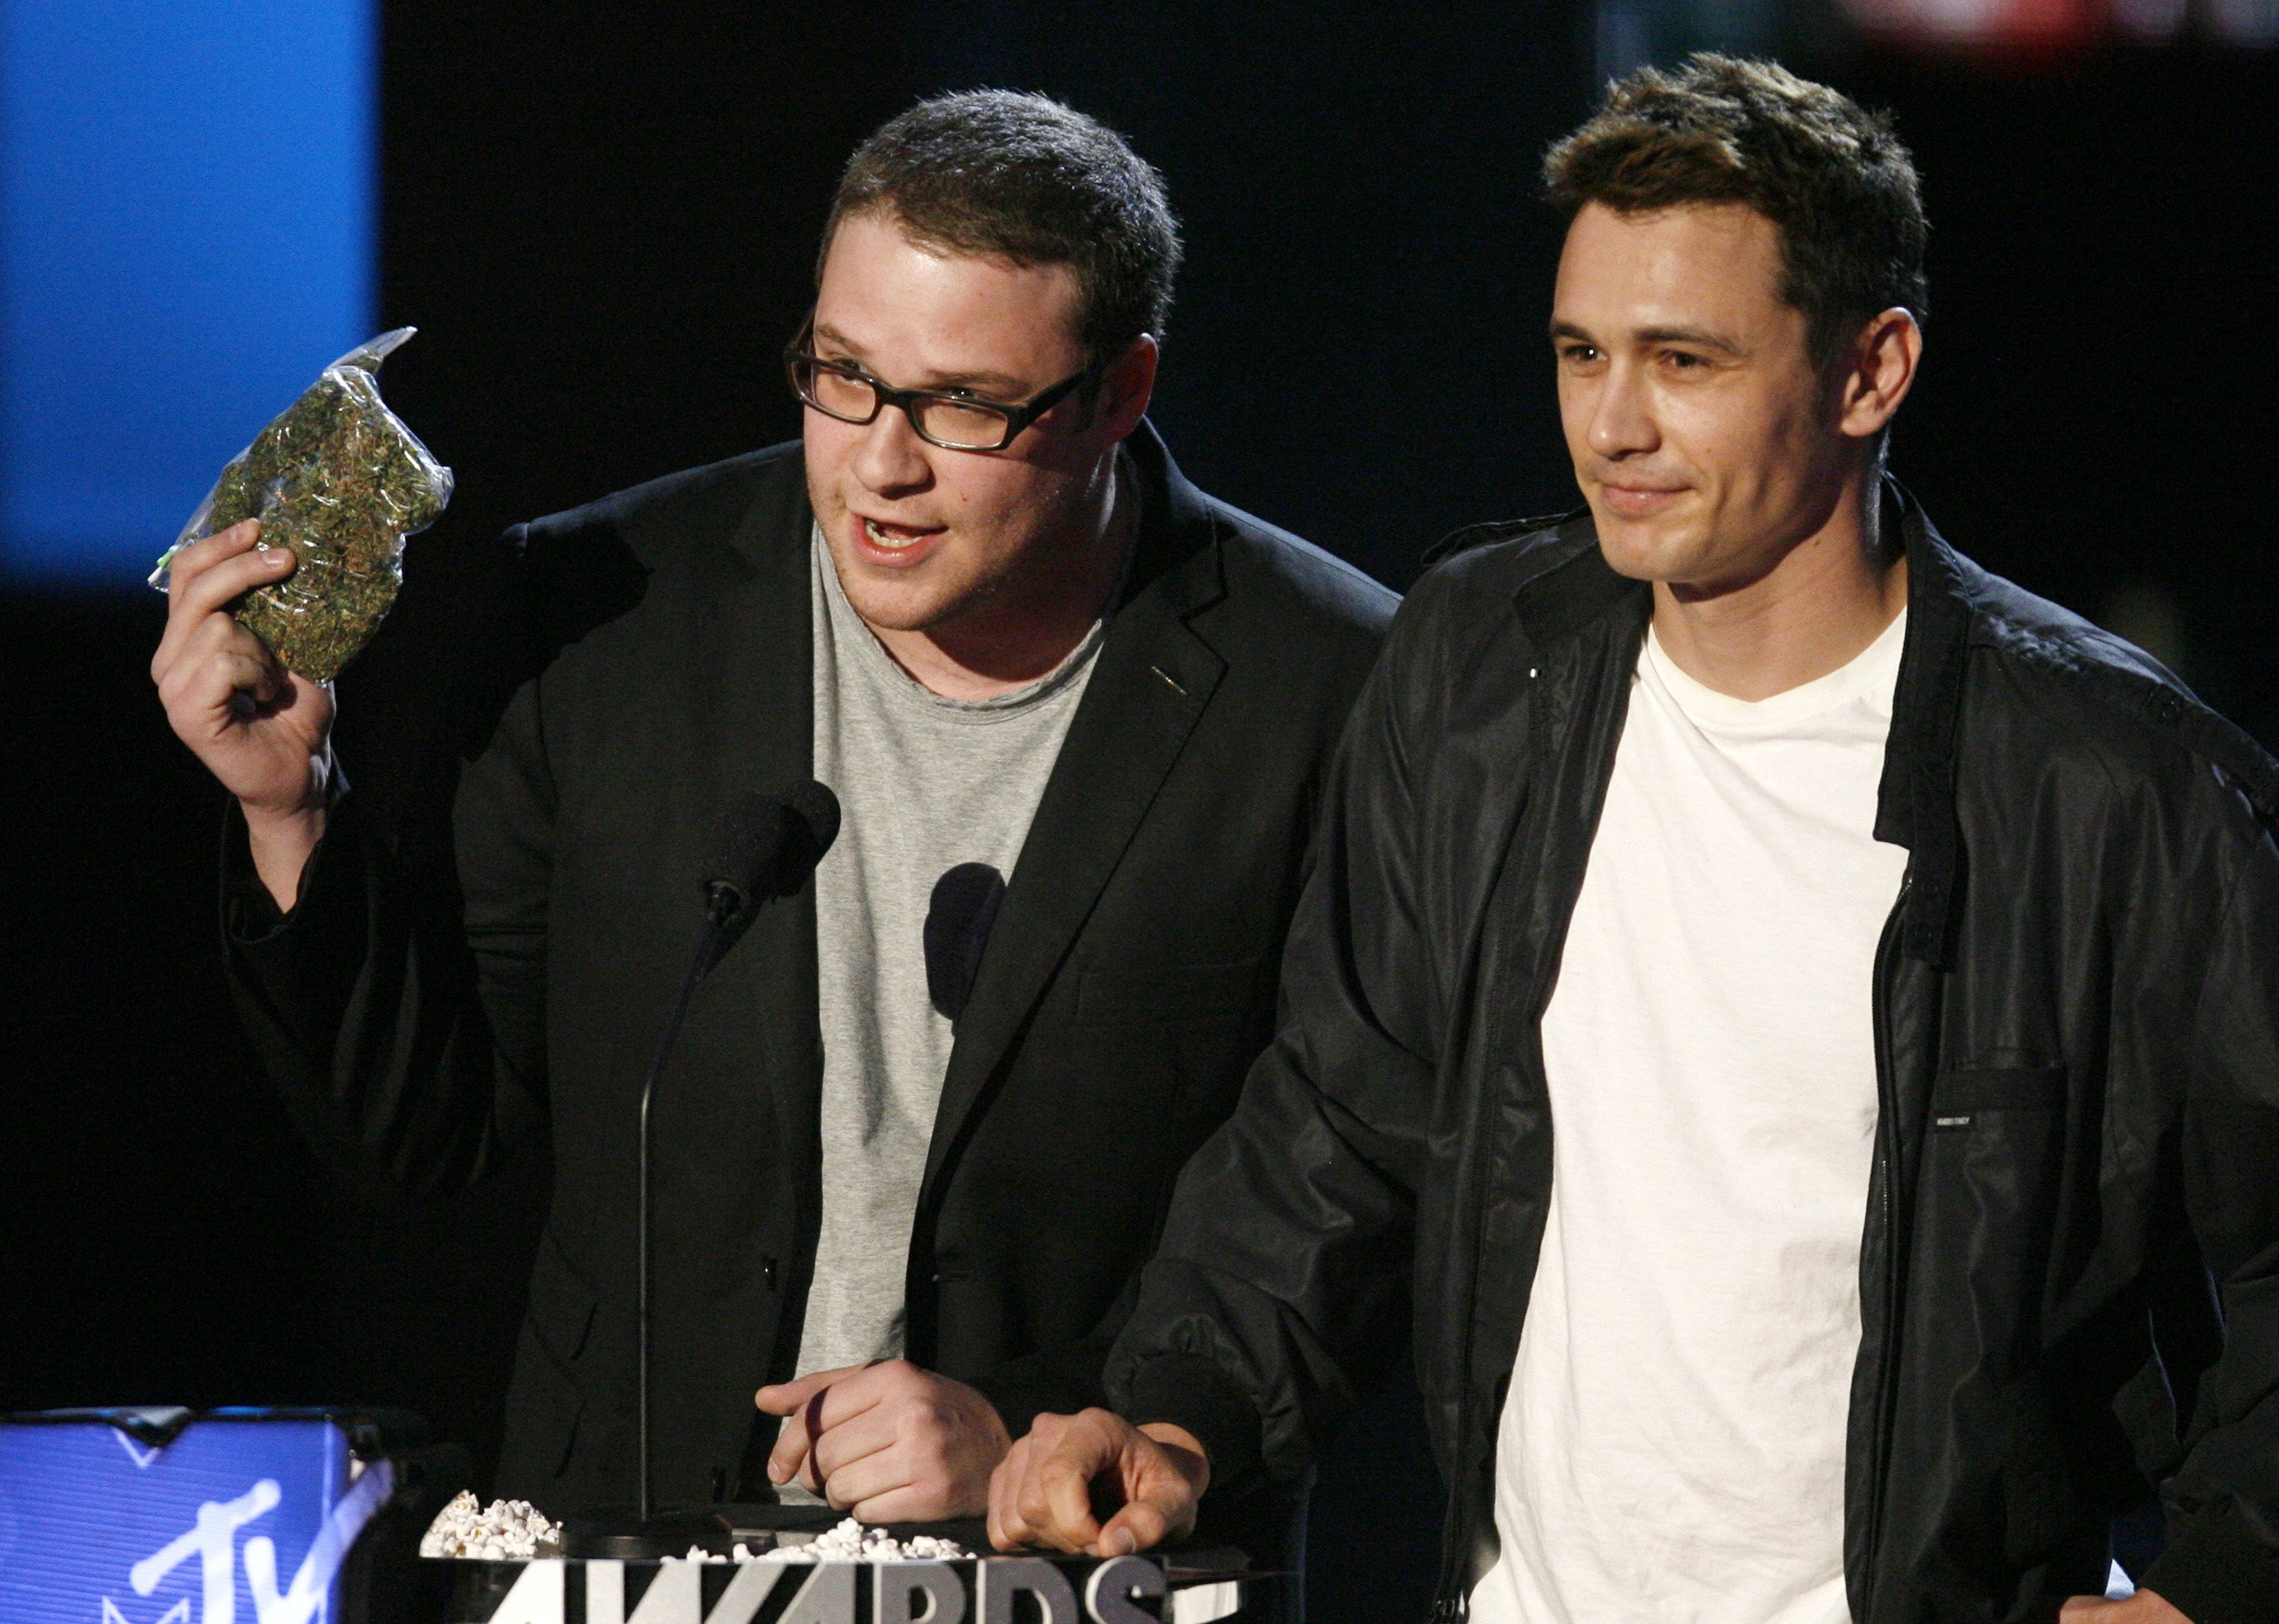 Seth Rogan and James Franco perform in a skit about marijuana at the 2008 MTV Movie Awards in Los Angeles